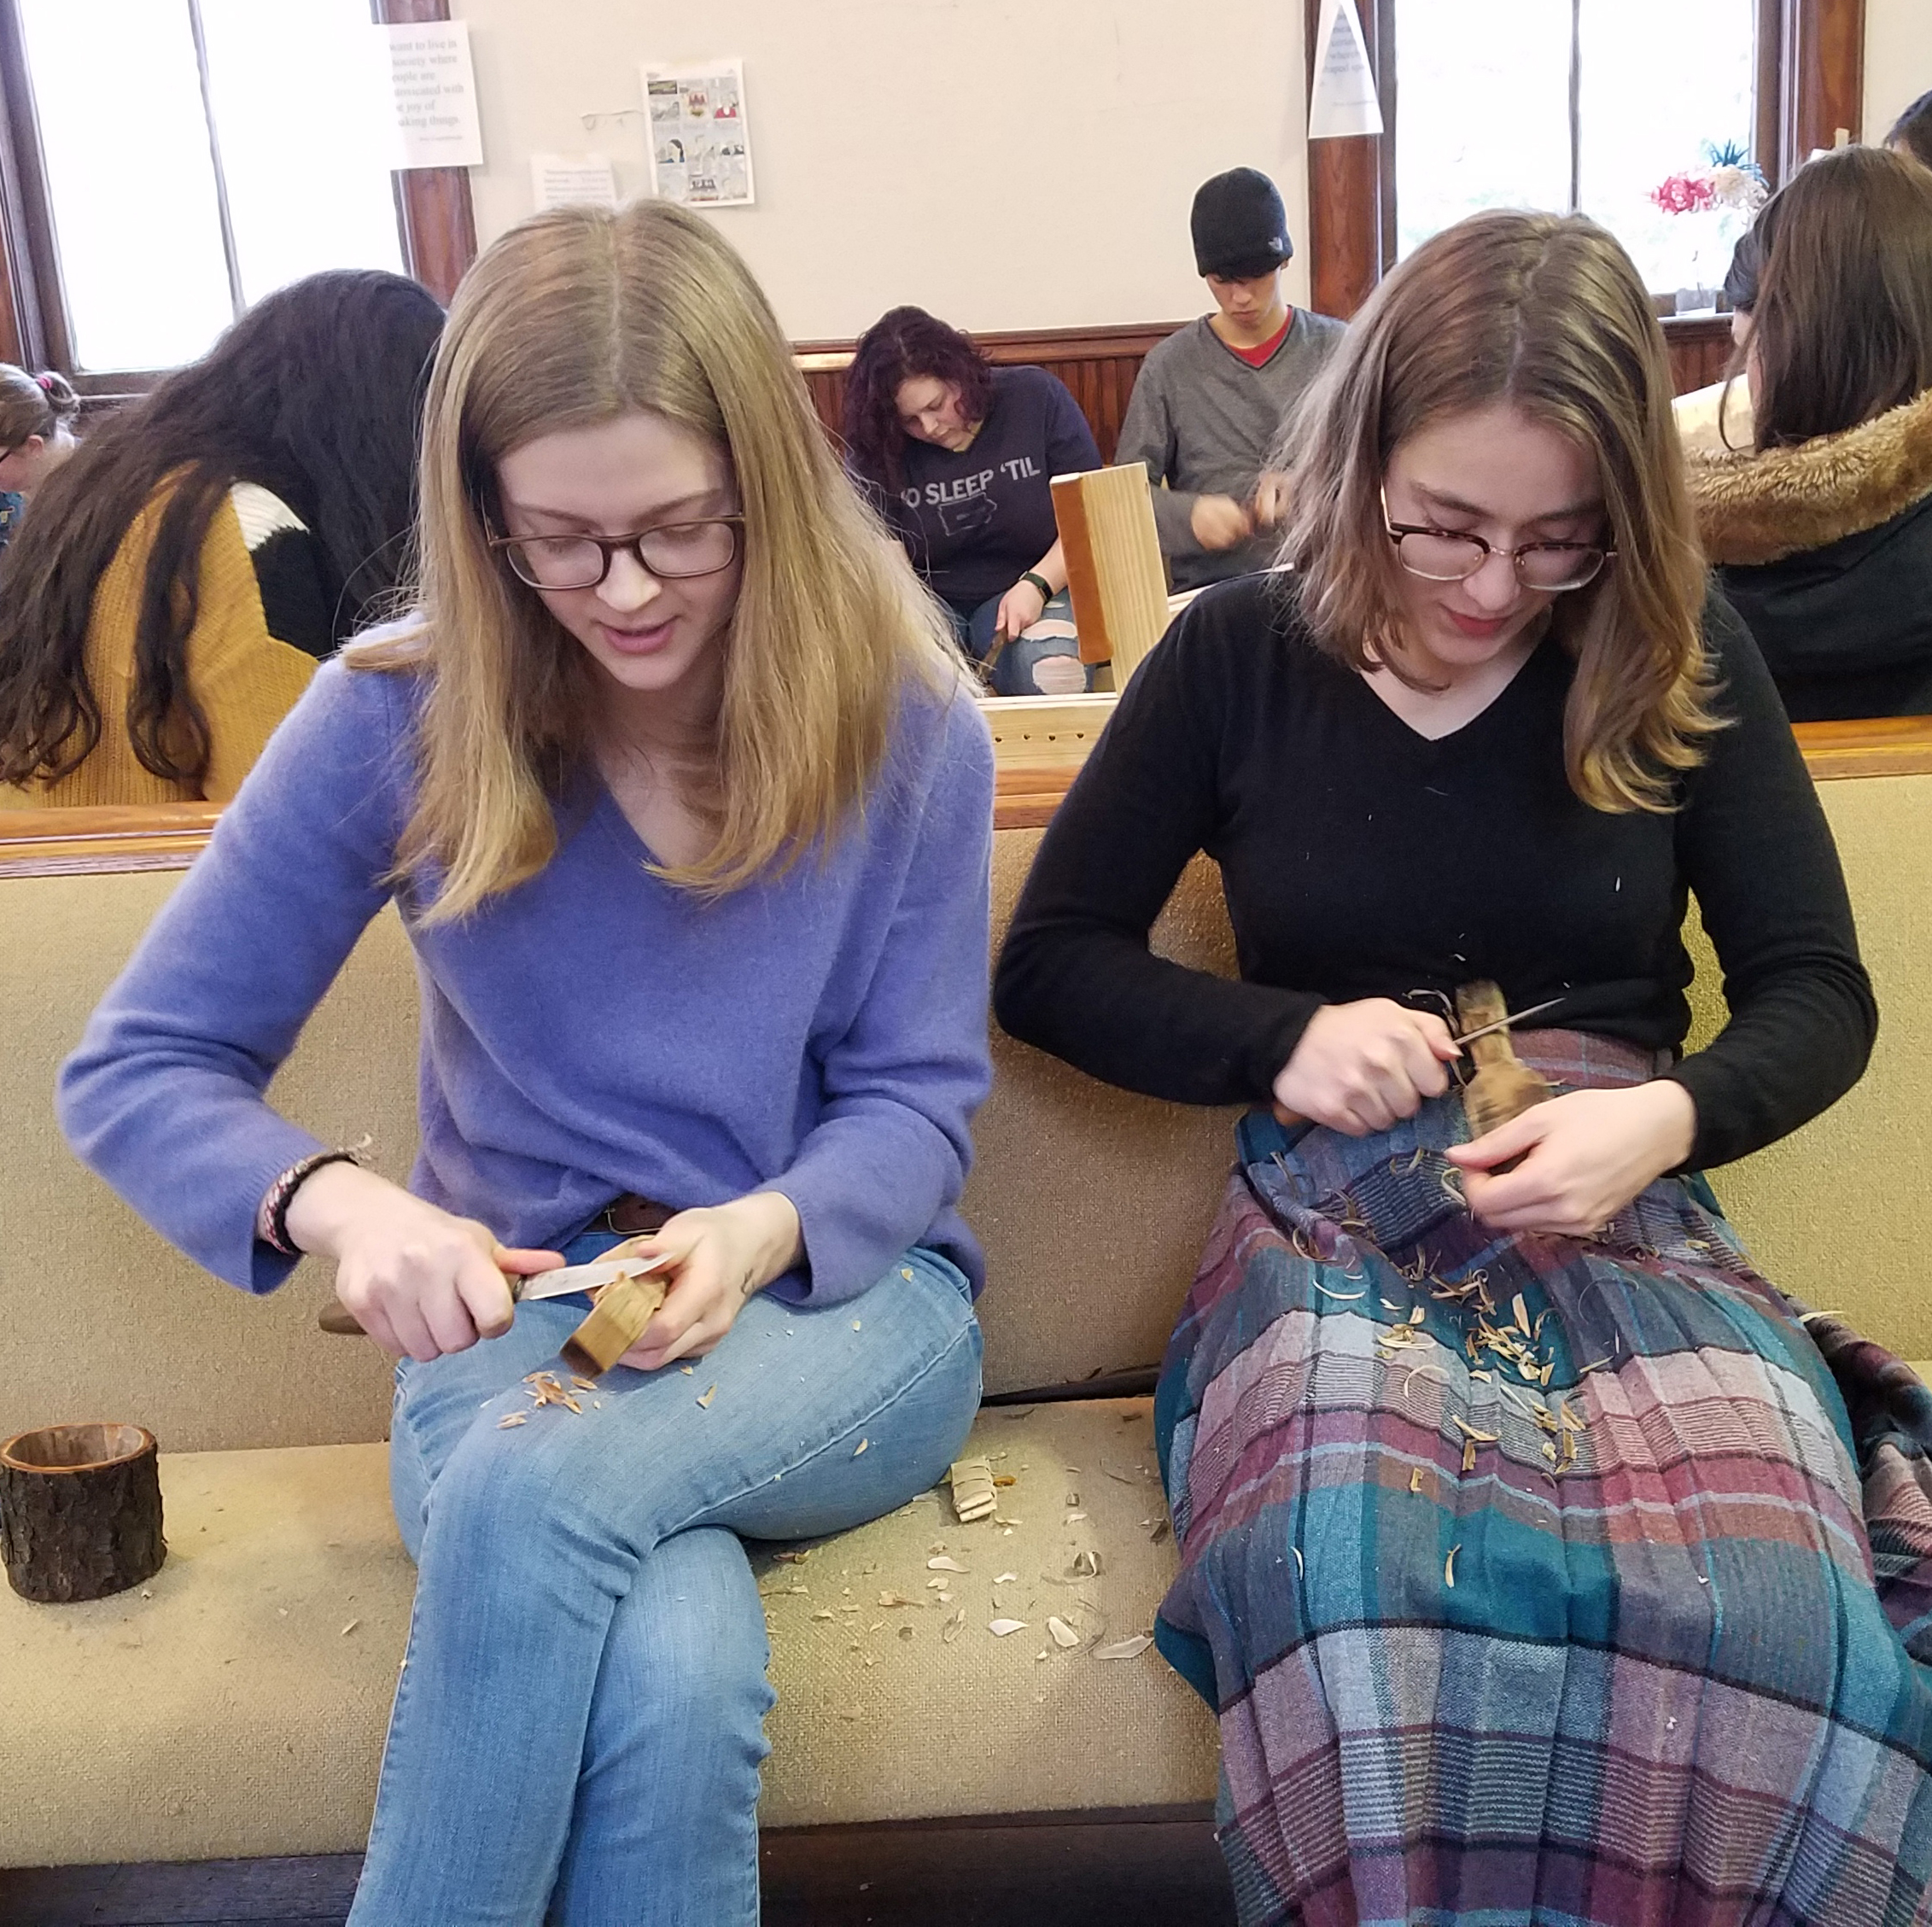 Two friends chatting and carving using thumb push (on left) and pull stroke (on right).